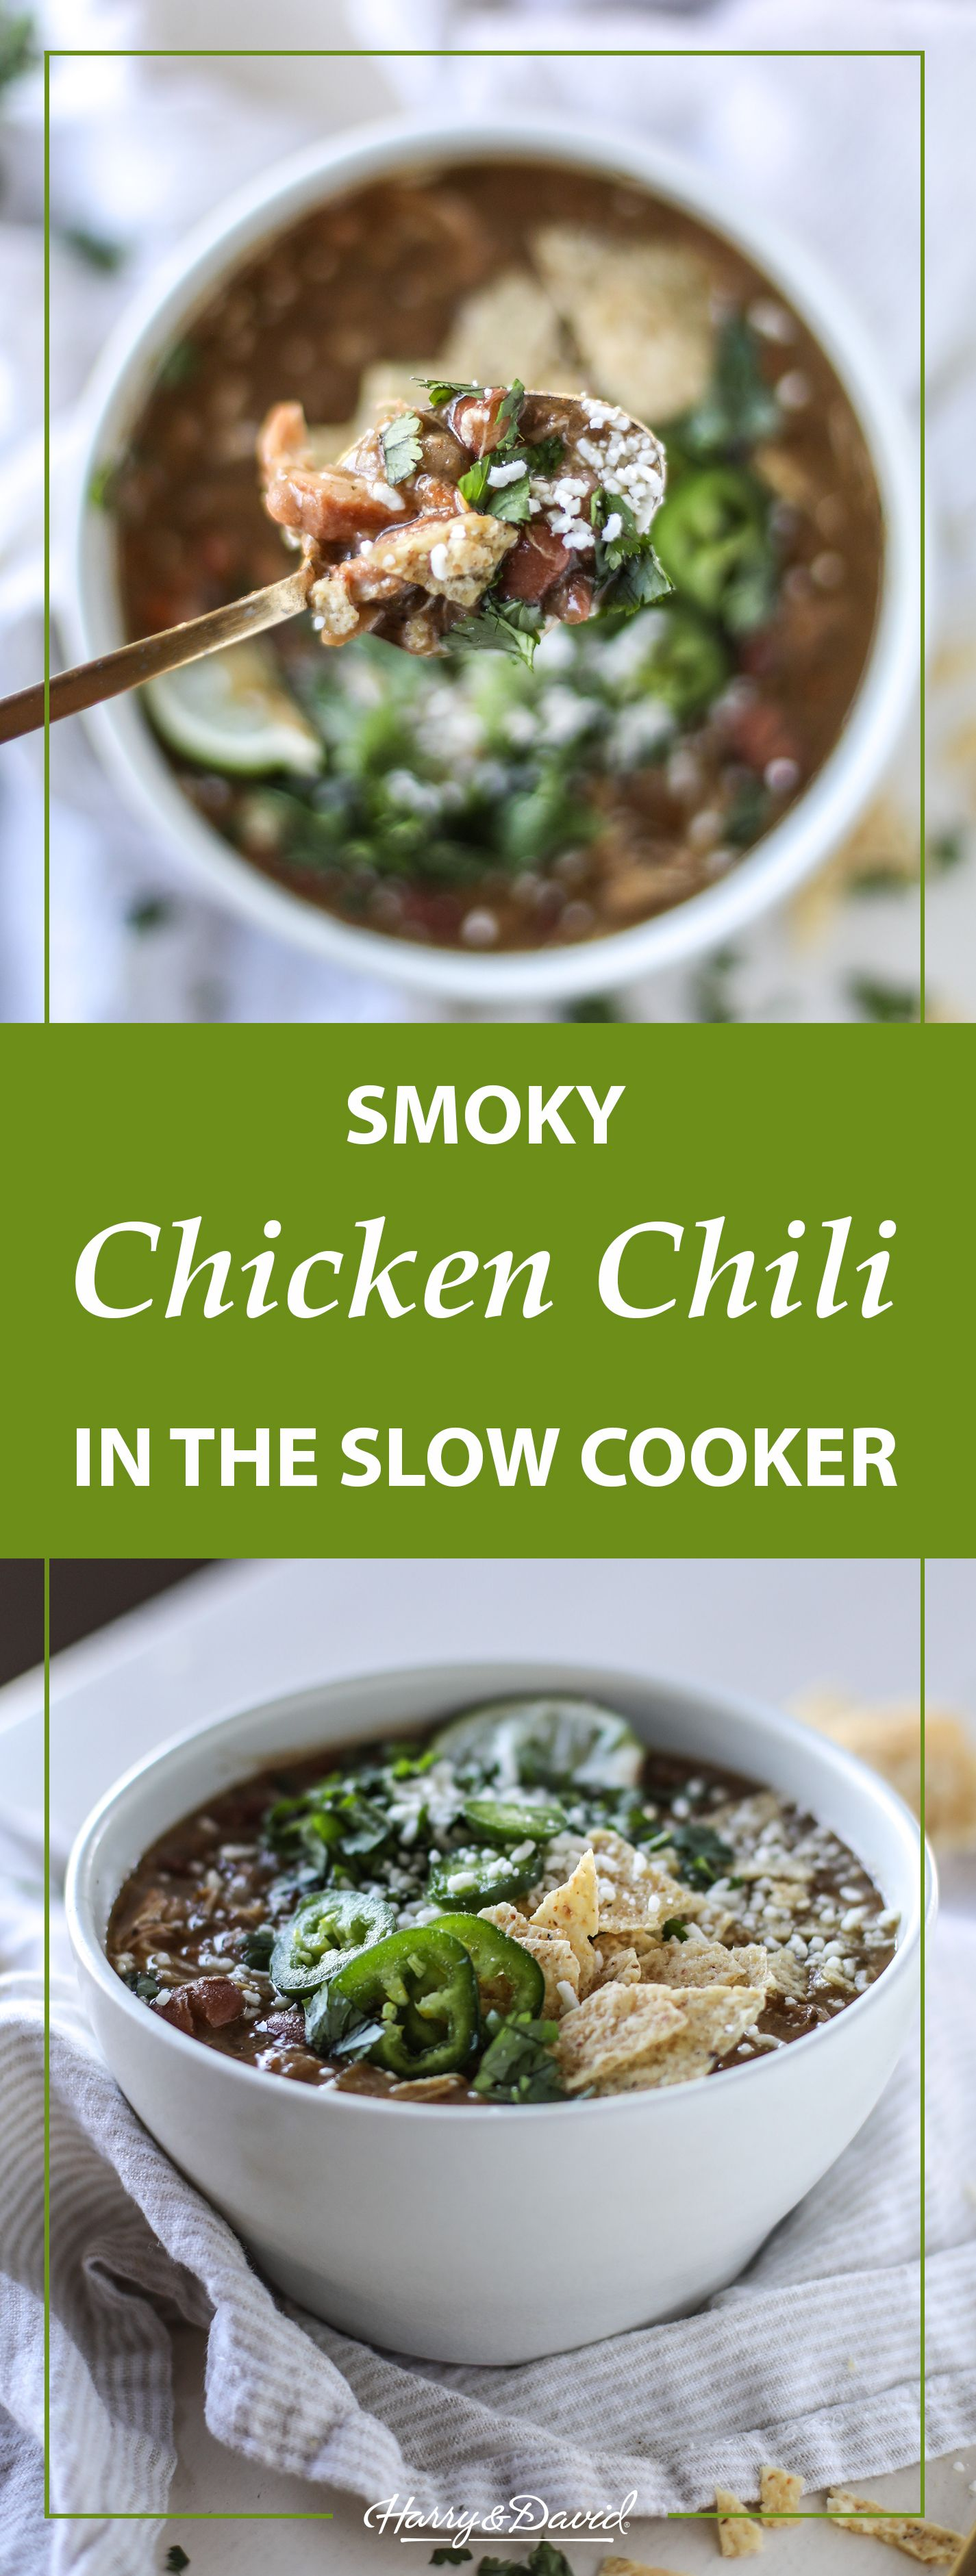 Smoky, Creamy Slow Cooker Chicken Chili at your service. This recipe hits the spot for anyone looking for a warm, hearty meal. Easy to make, and easy to enjoy.